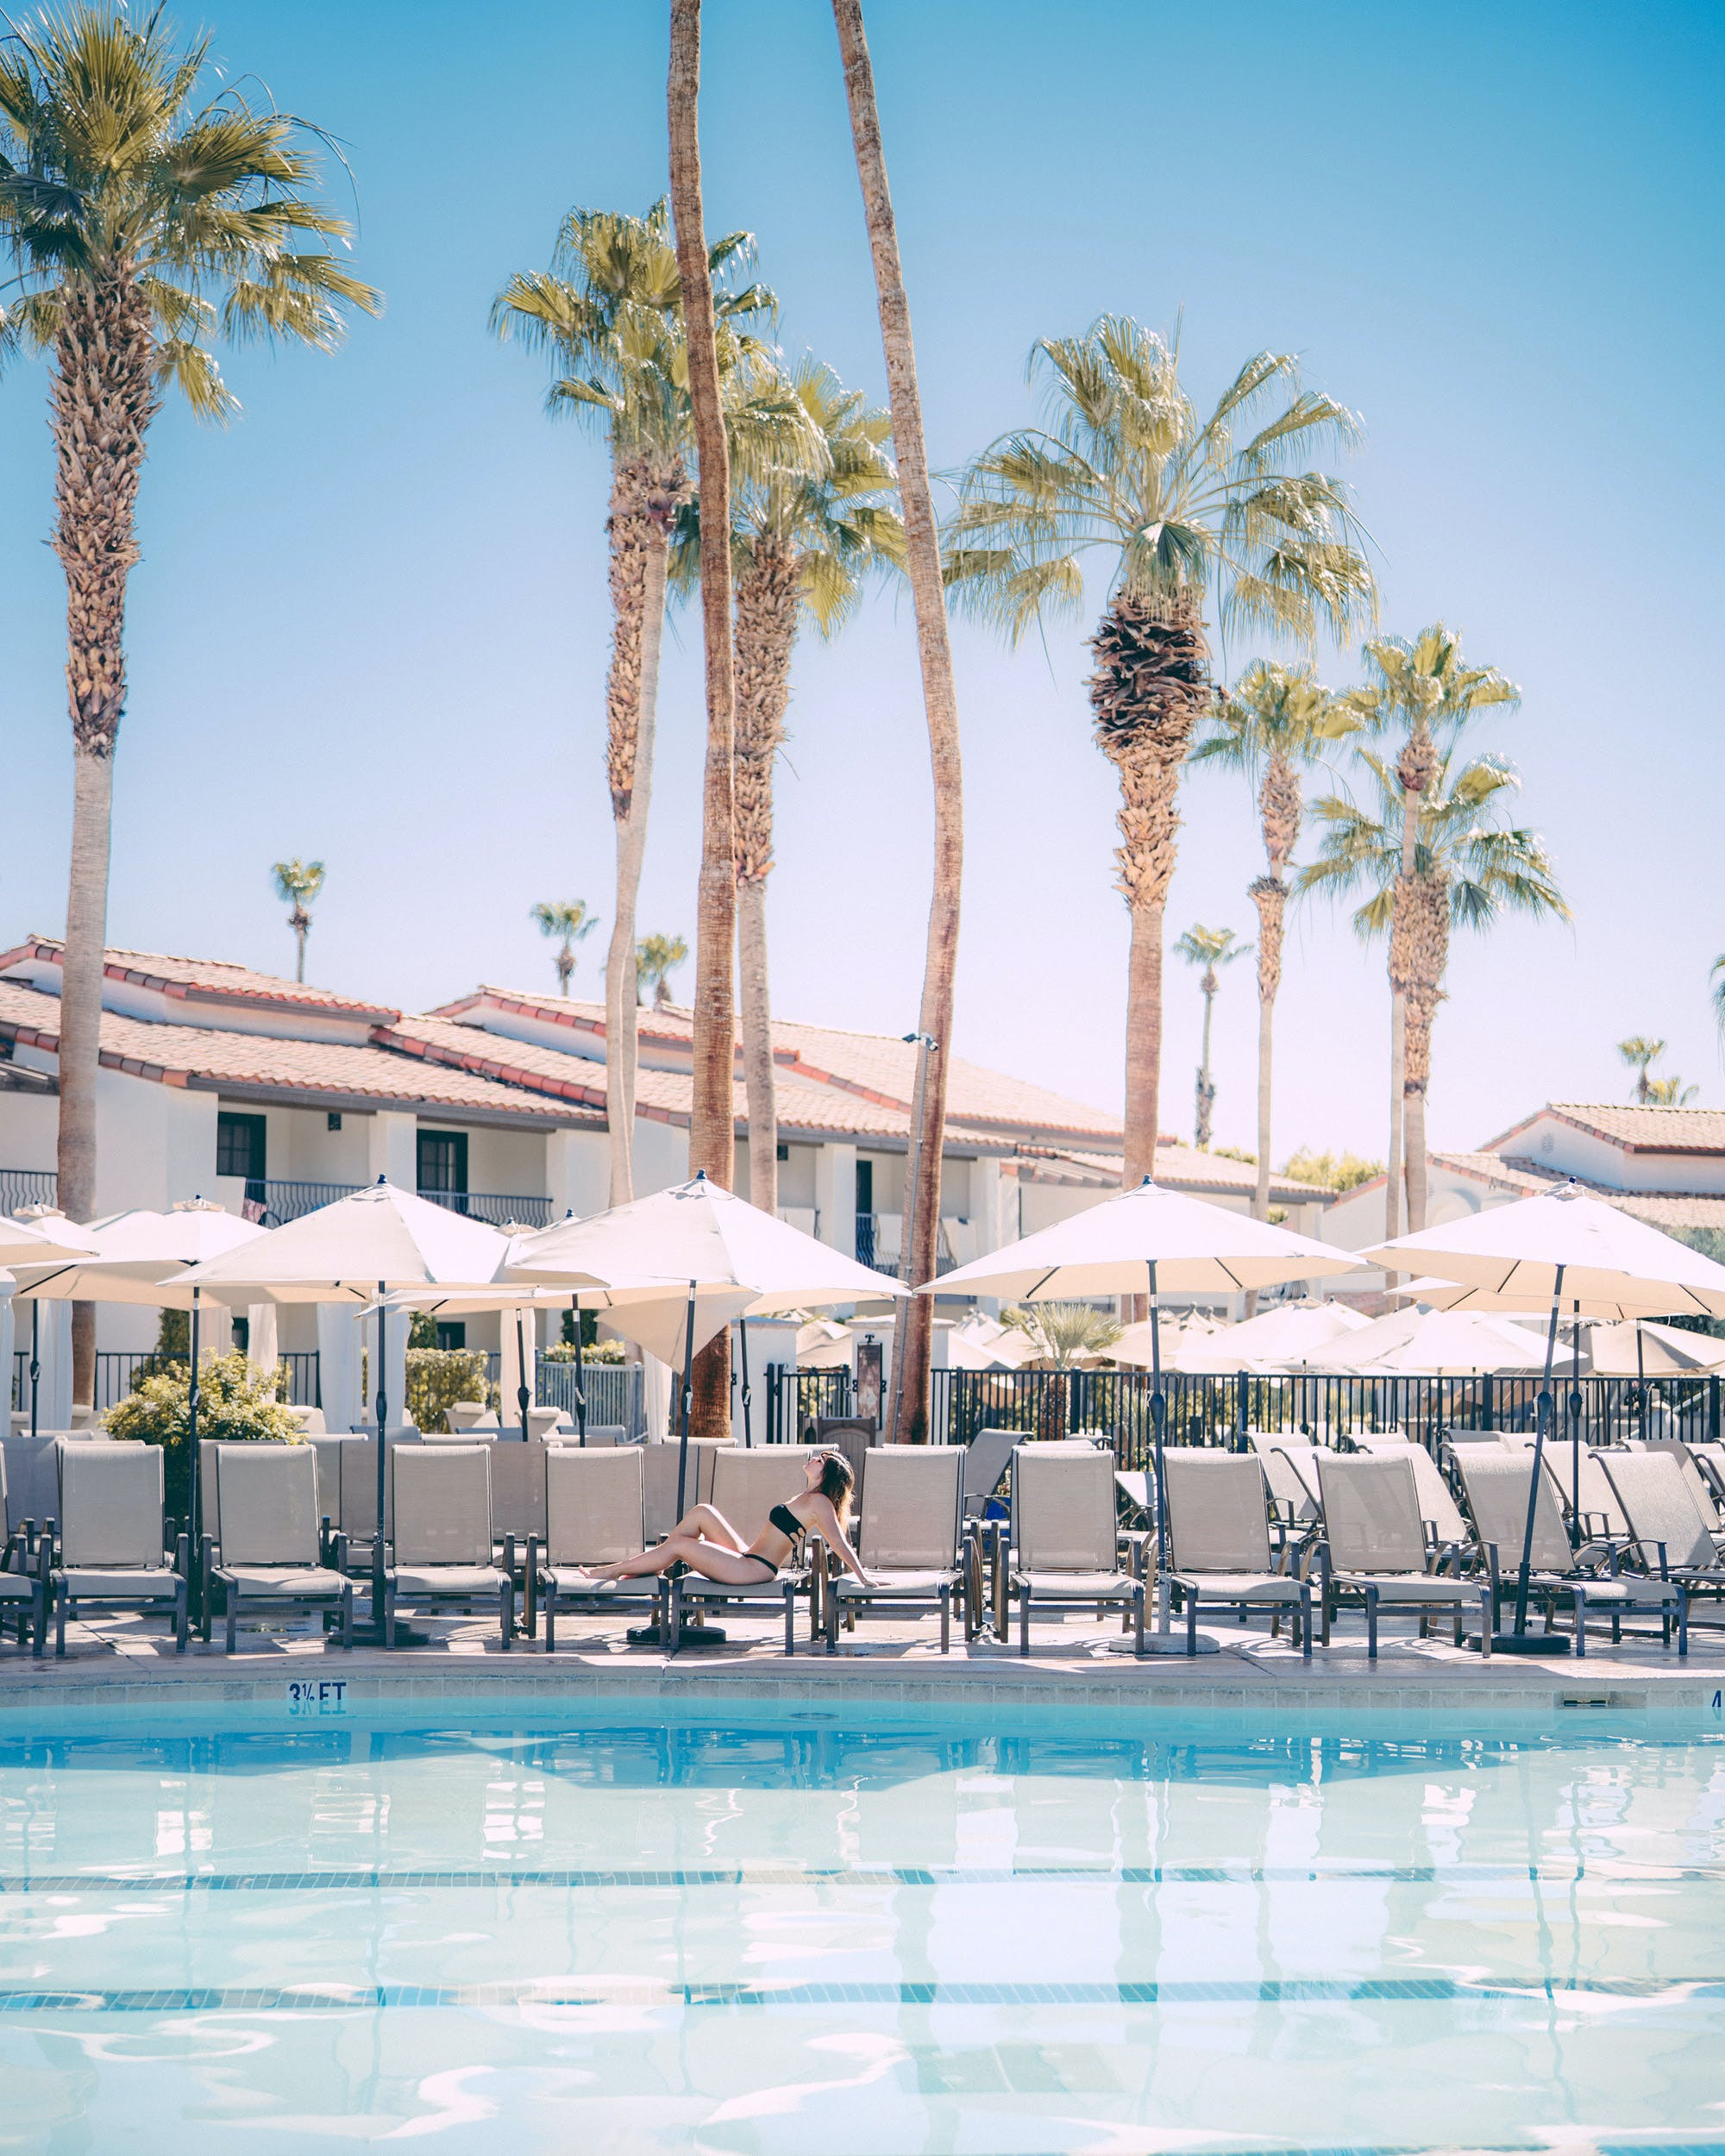 Waking Up In The Omni, Palm Springs